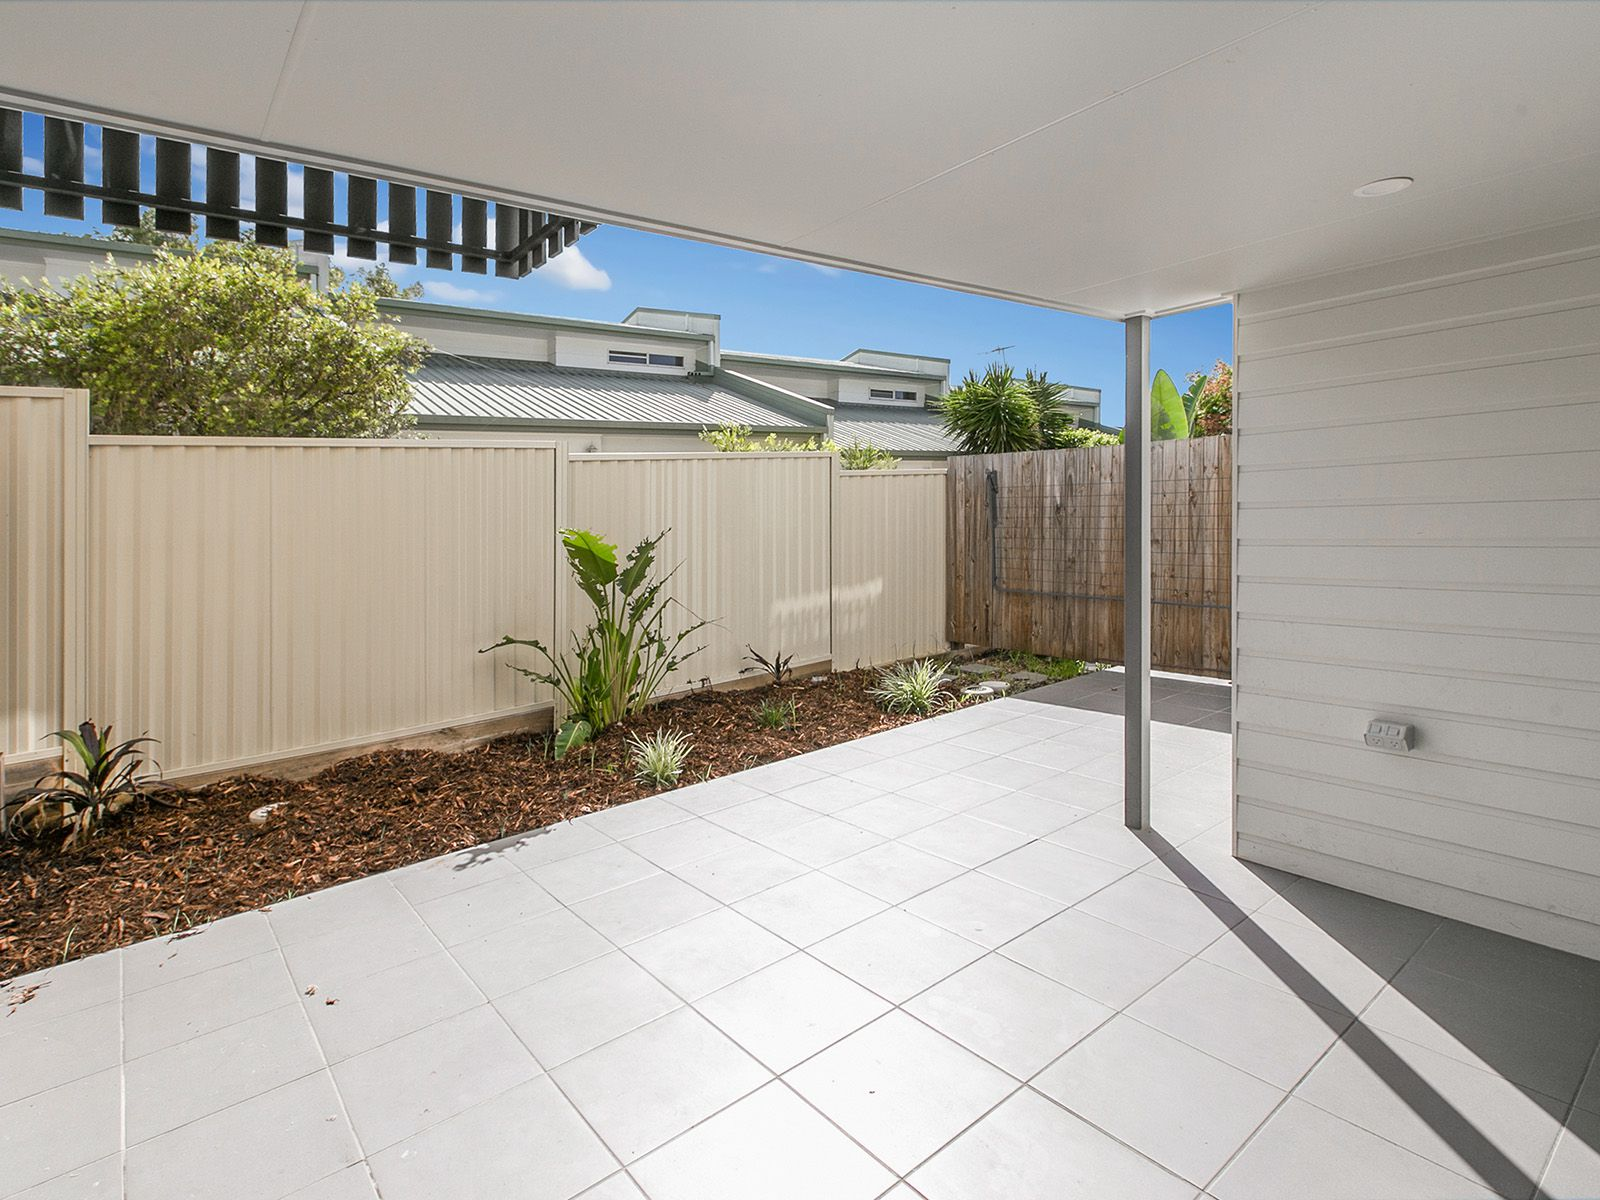 4 / 16 Macquarie Street Booval, Booval